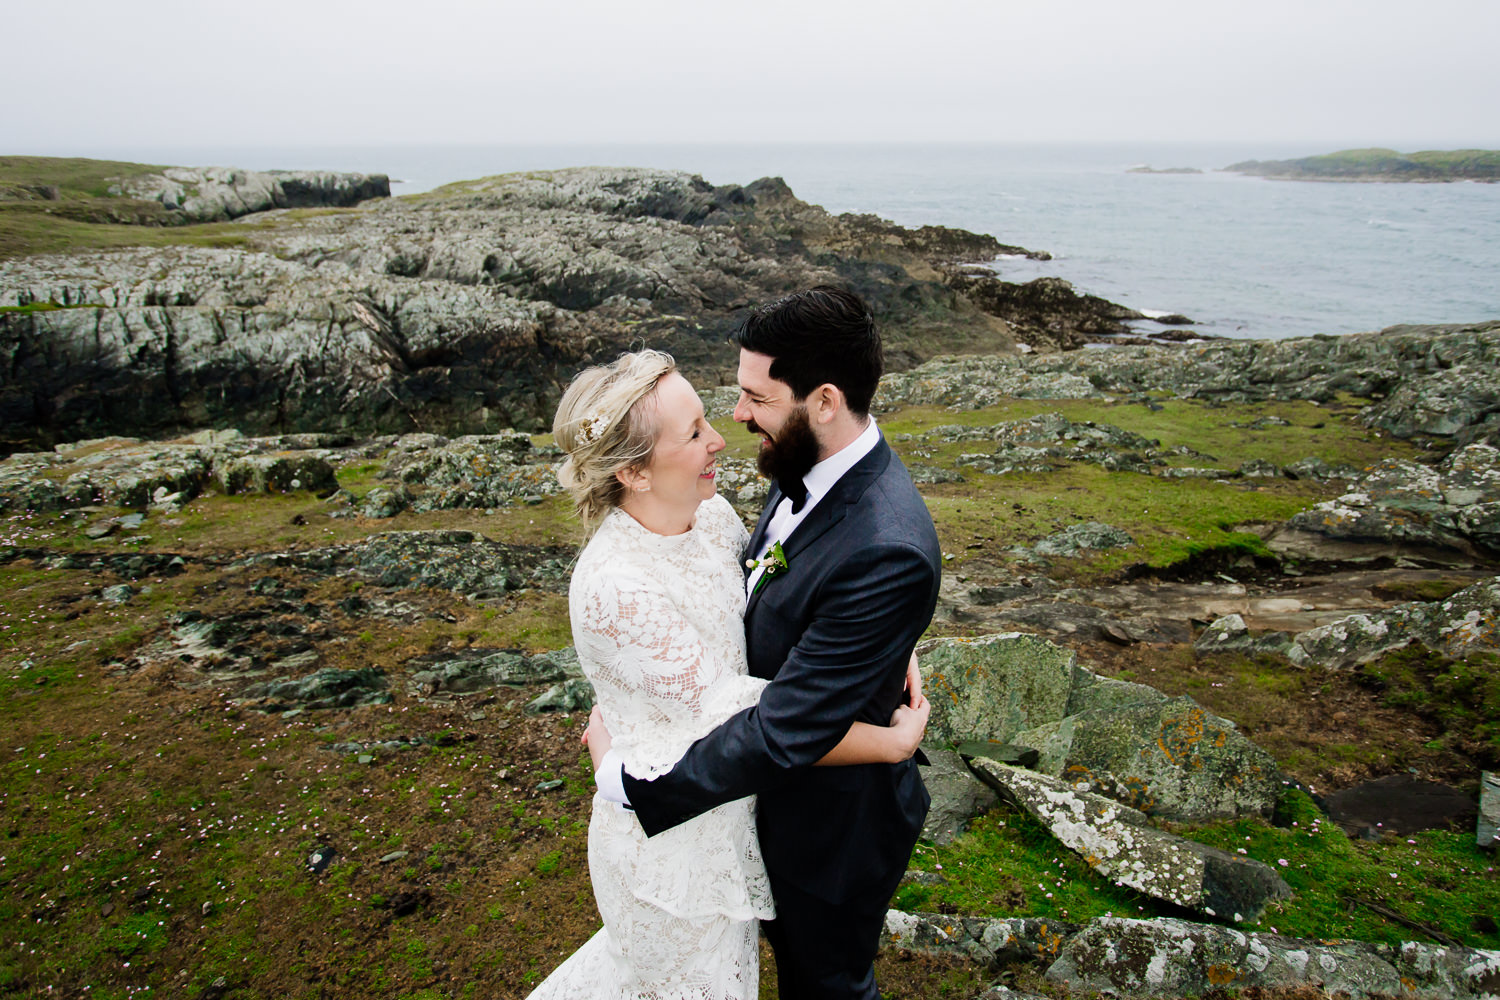 A bride and groom keeping warm on the cliffs in Anglesey, Wales.